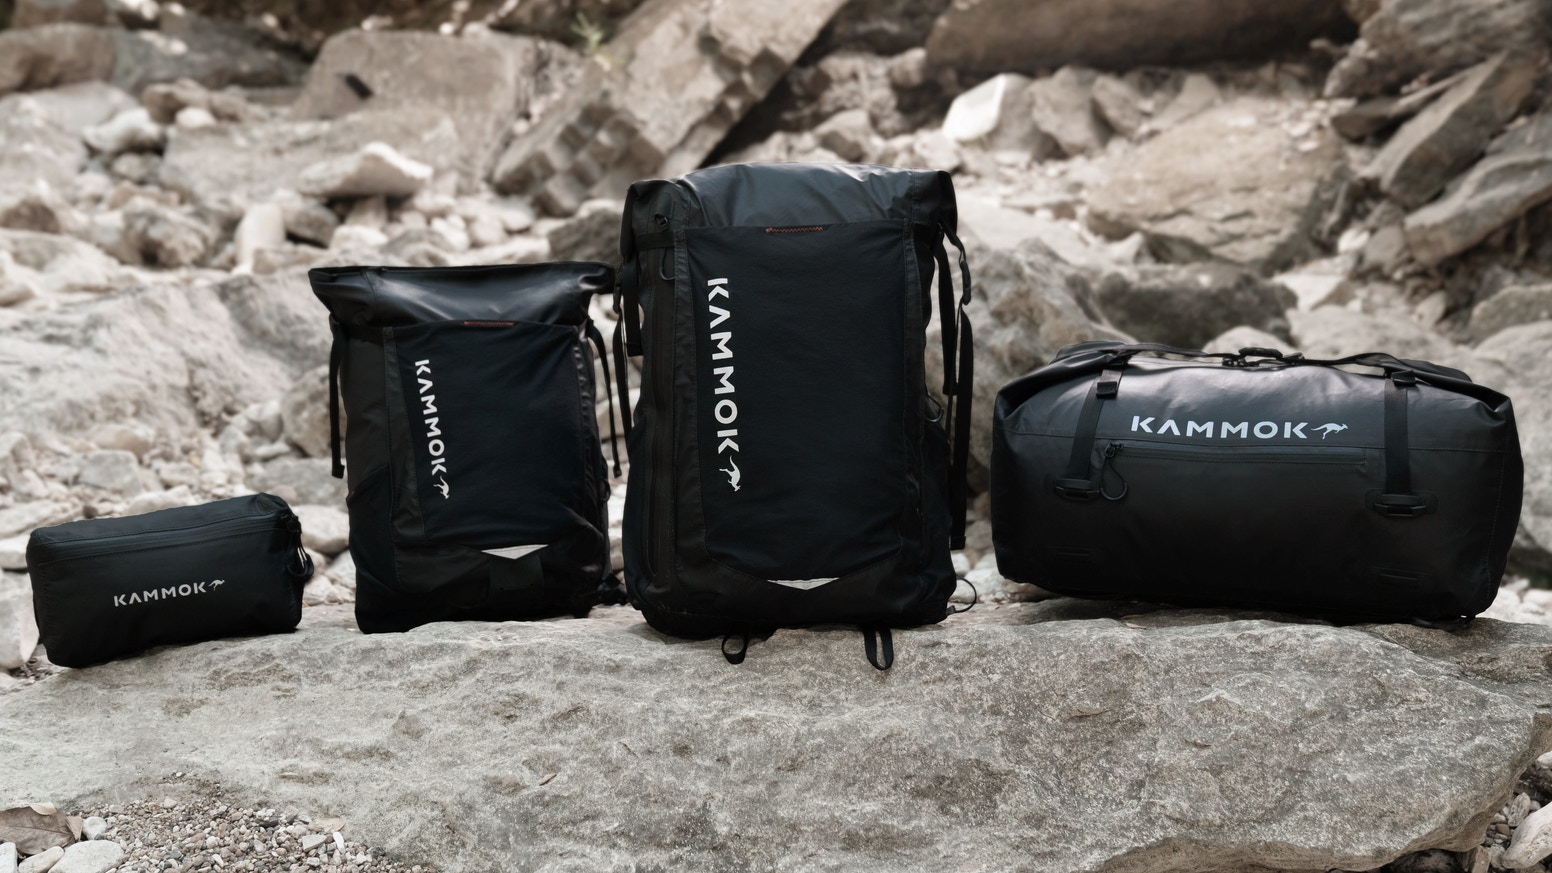 Modular, waterproof packs to carry your time outside ever farther. The Burro Packs are designed for the everyday, wherever you roam.